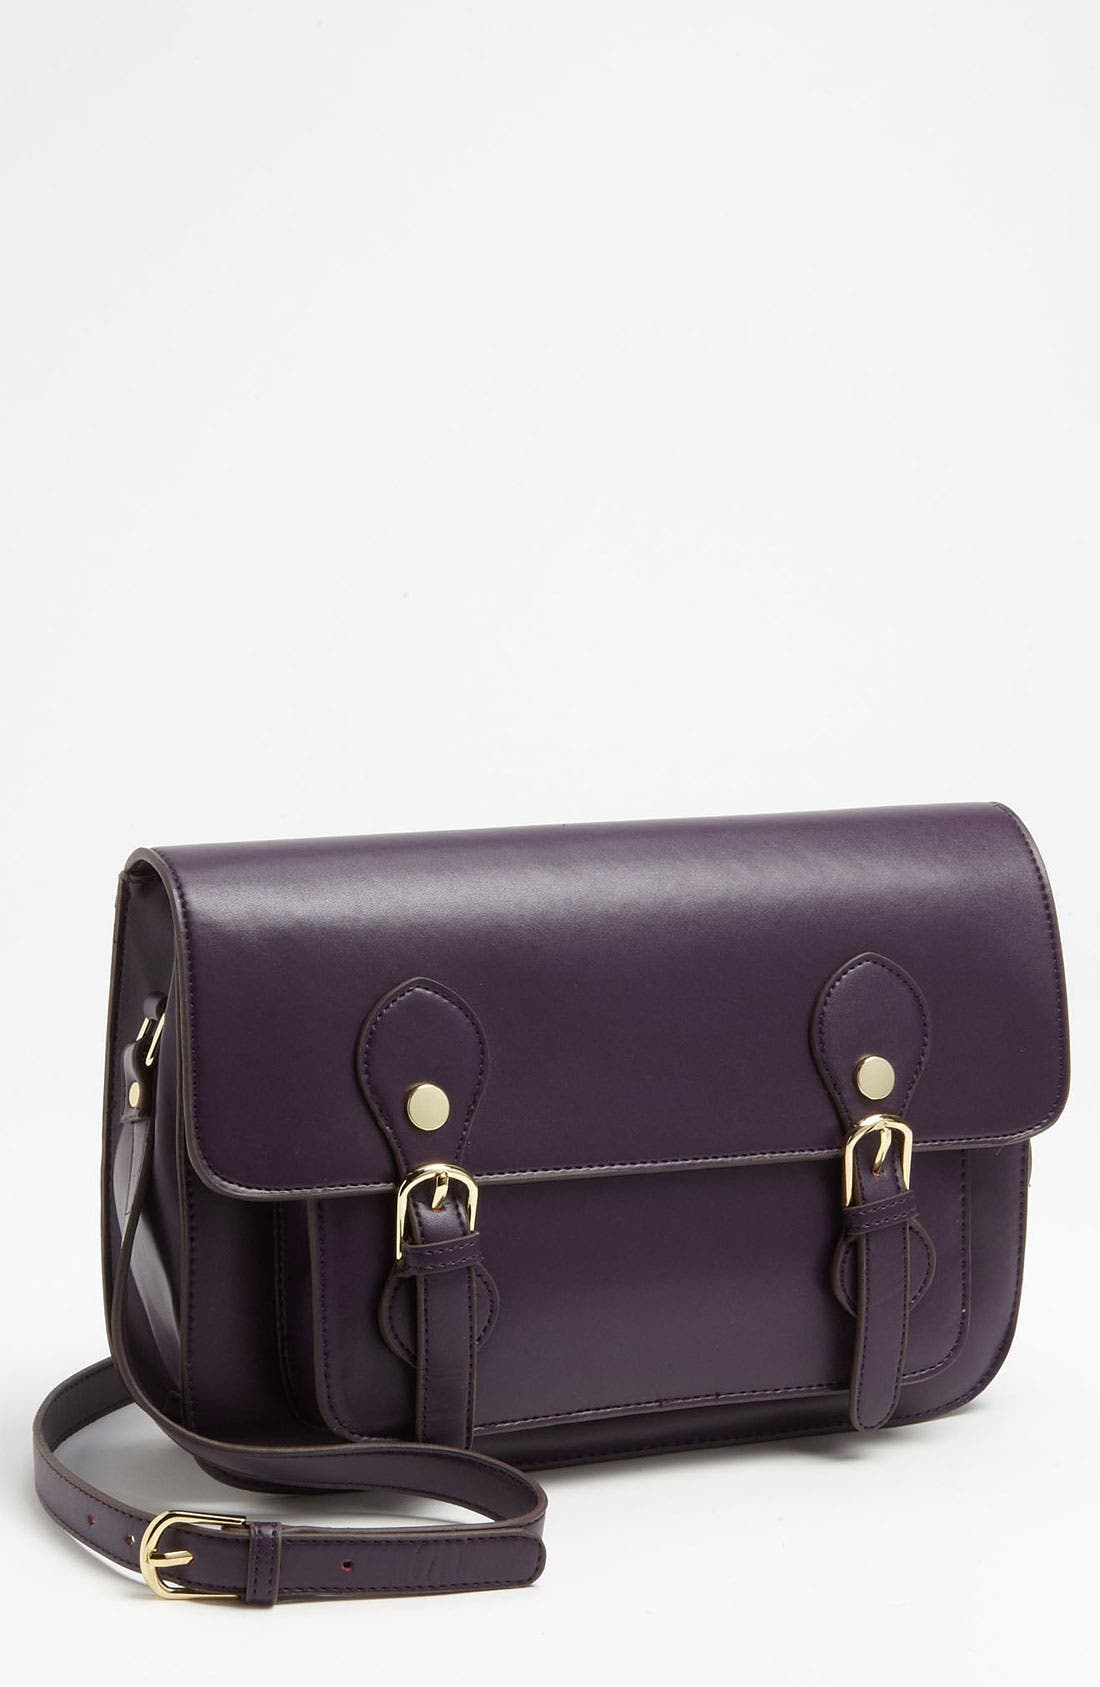 Main Image - Steven by Steve Madden 'Large' Crossbody Bag